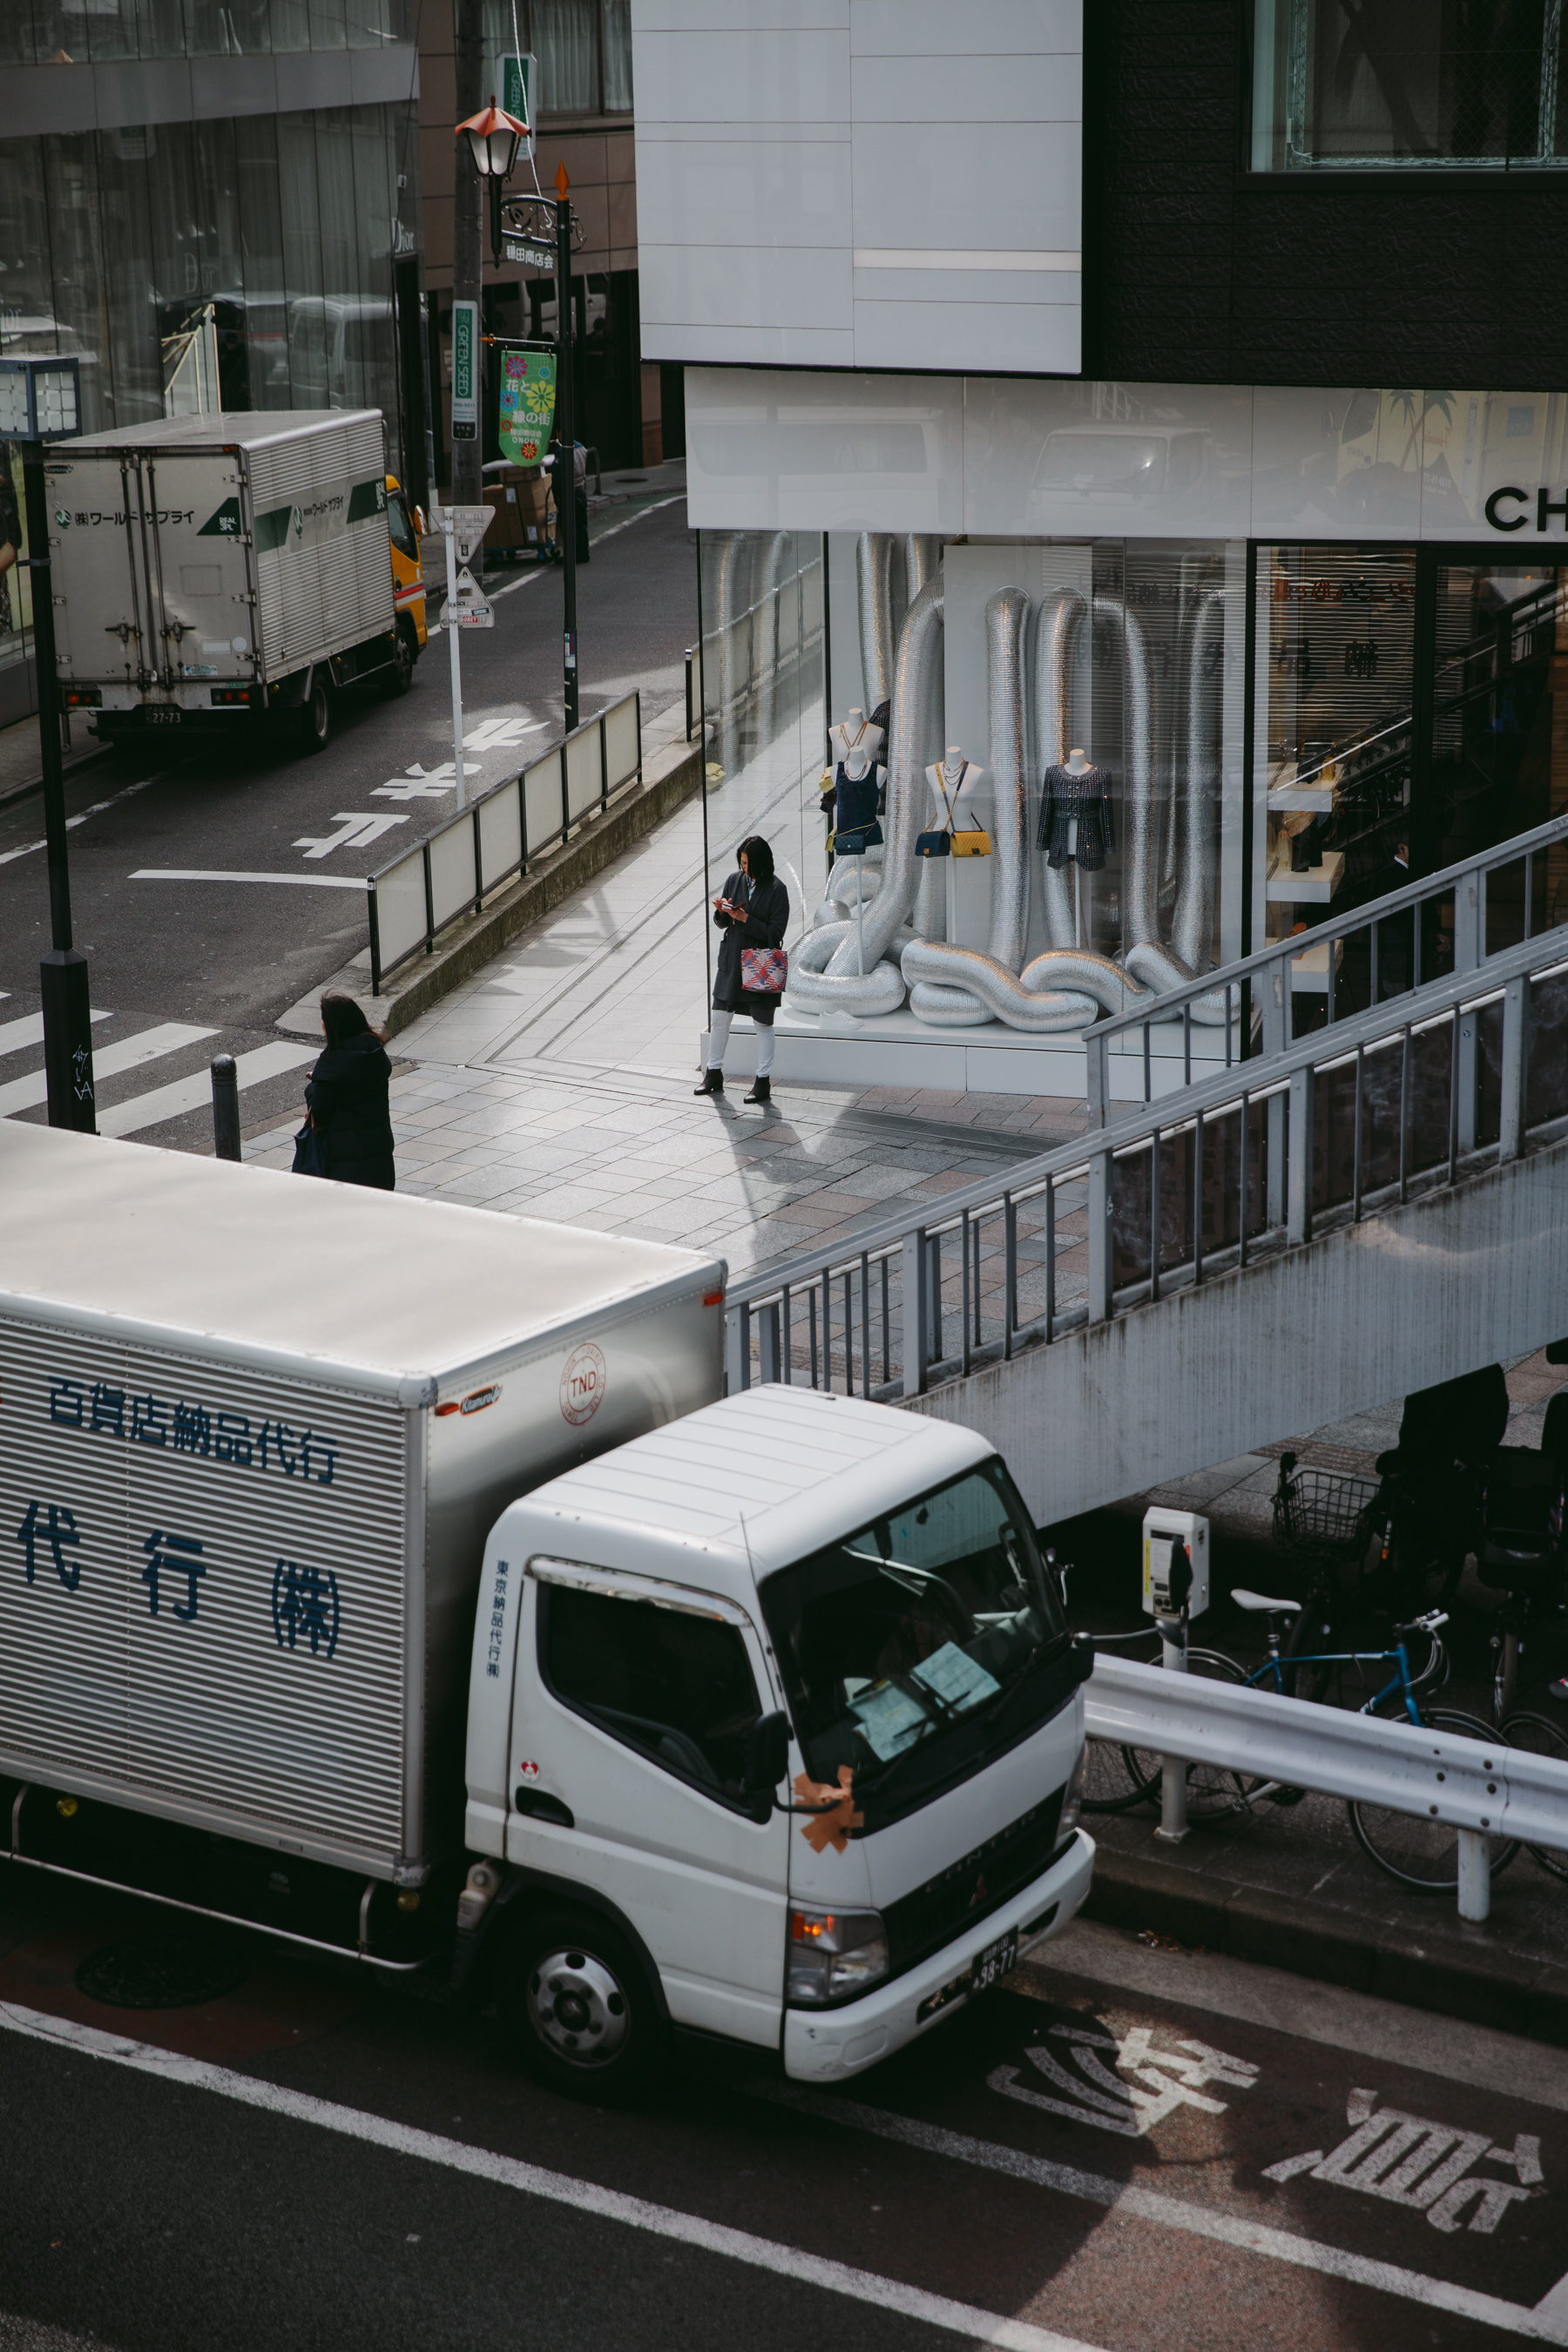 MikeSeehagel-commercial-lifestyle-travel-photography-Japan-25.jpg